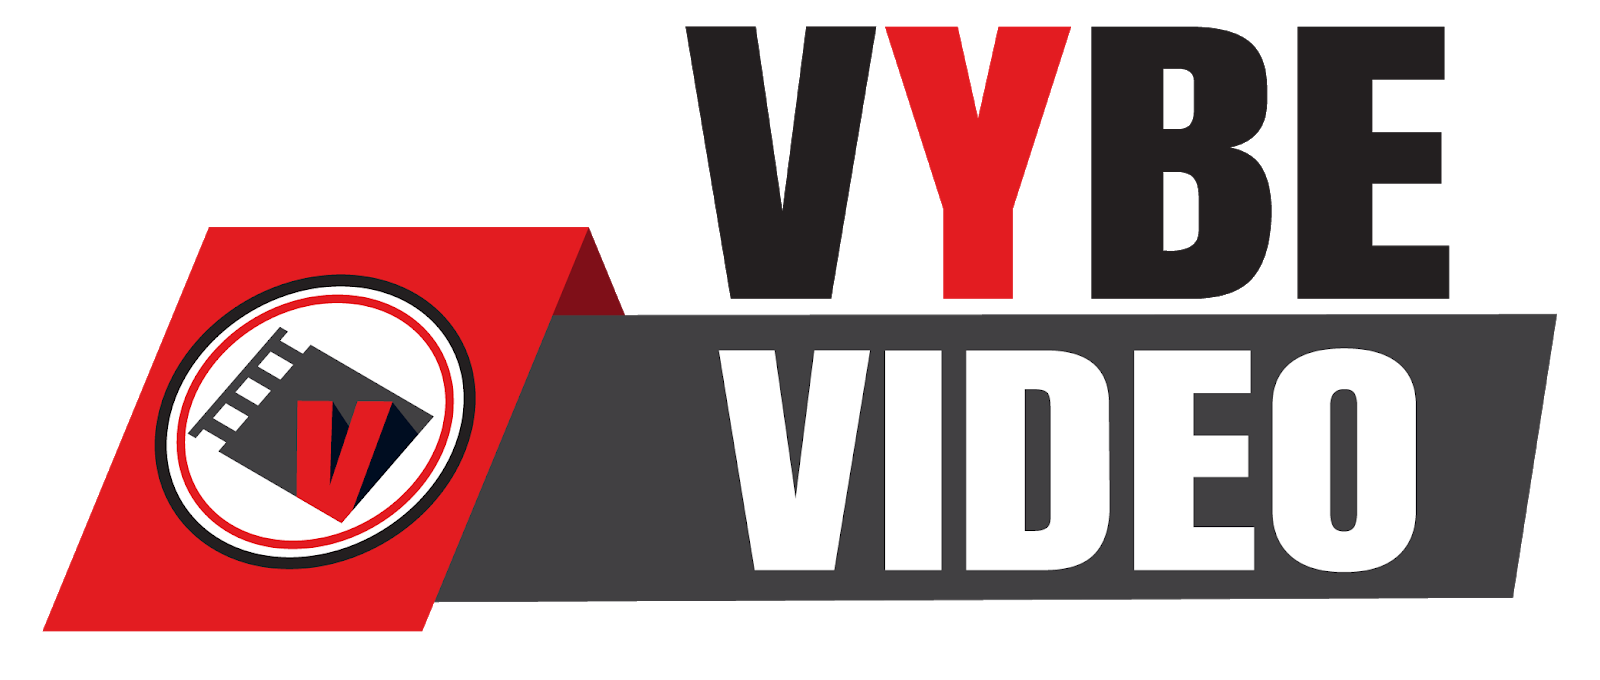 Vybe Video